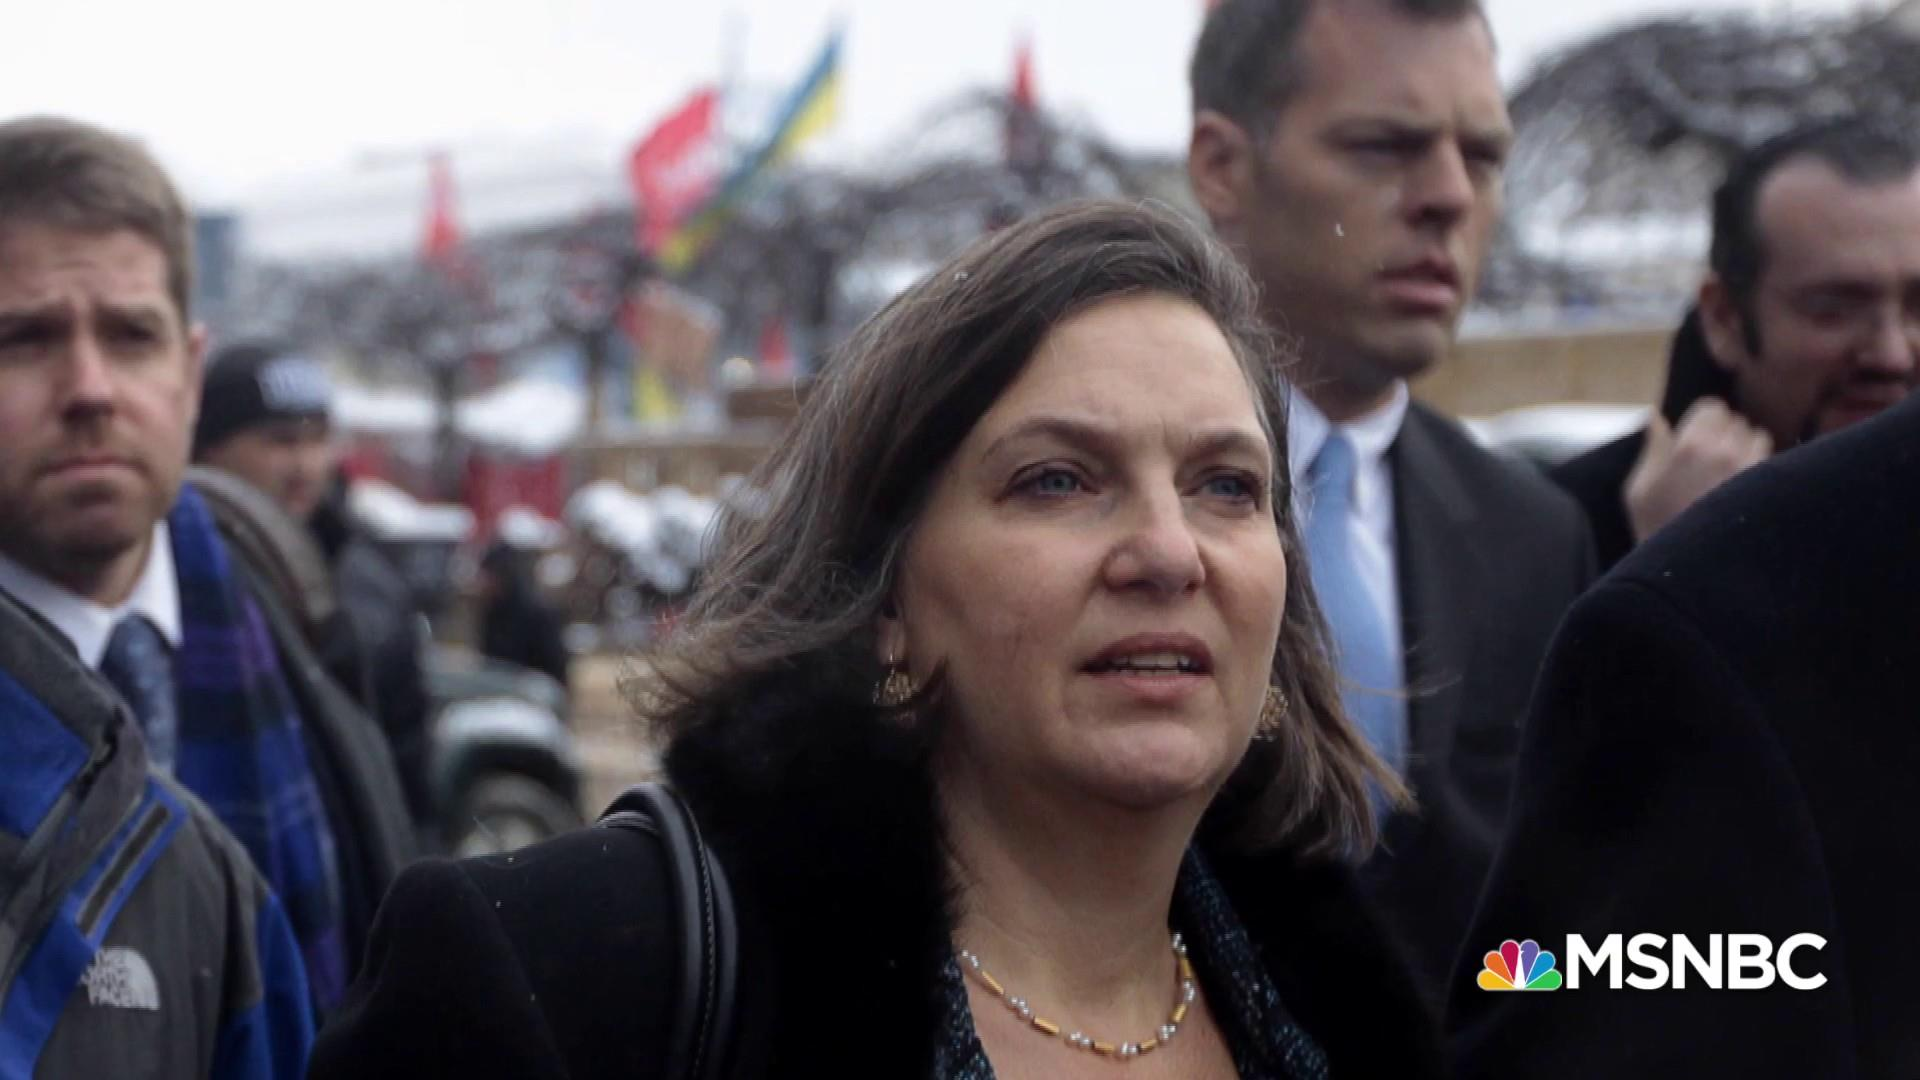 Russian hack of Victoria Nuland an early warning sign for 2016